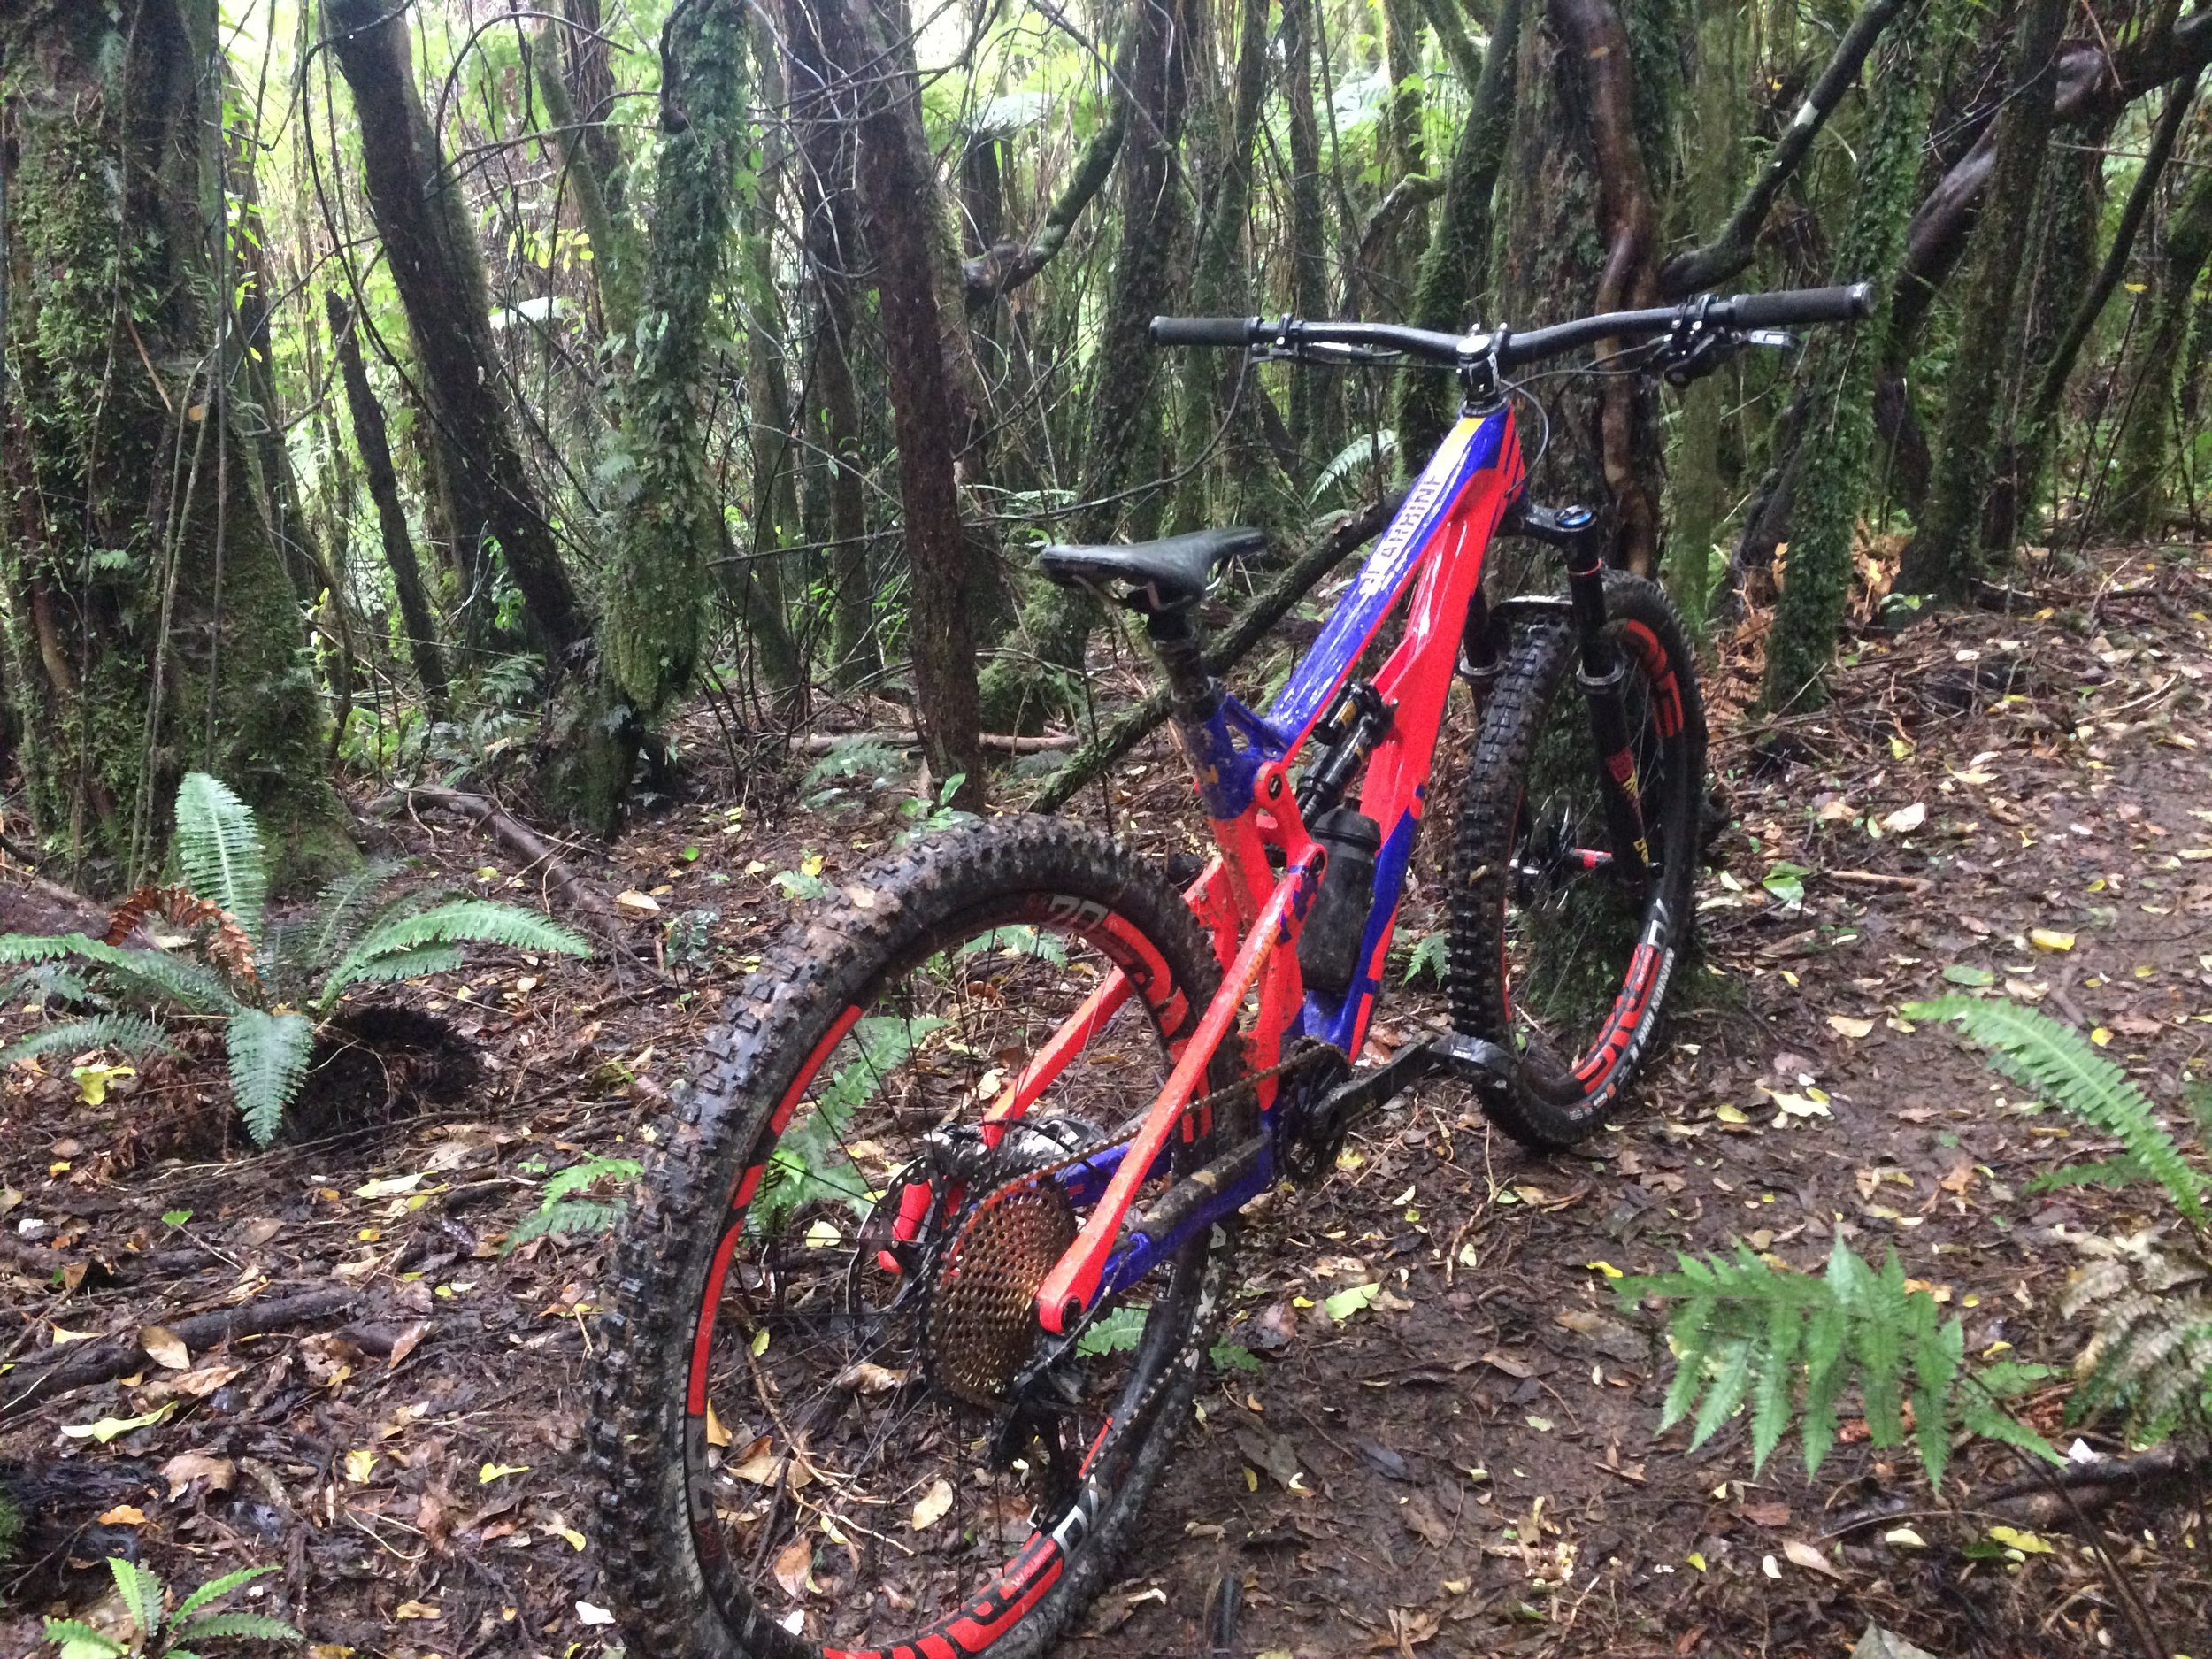 Shitty iPhone pic as it was raining. Surprisingly, the beast   handled the Akatarawas tight technical slippery single track with ease